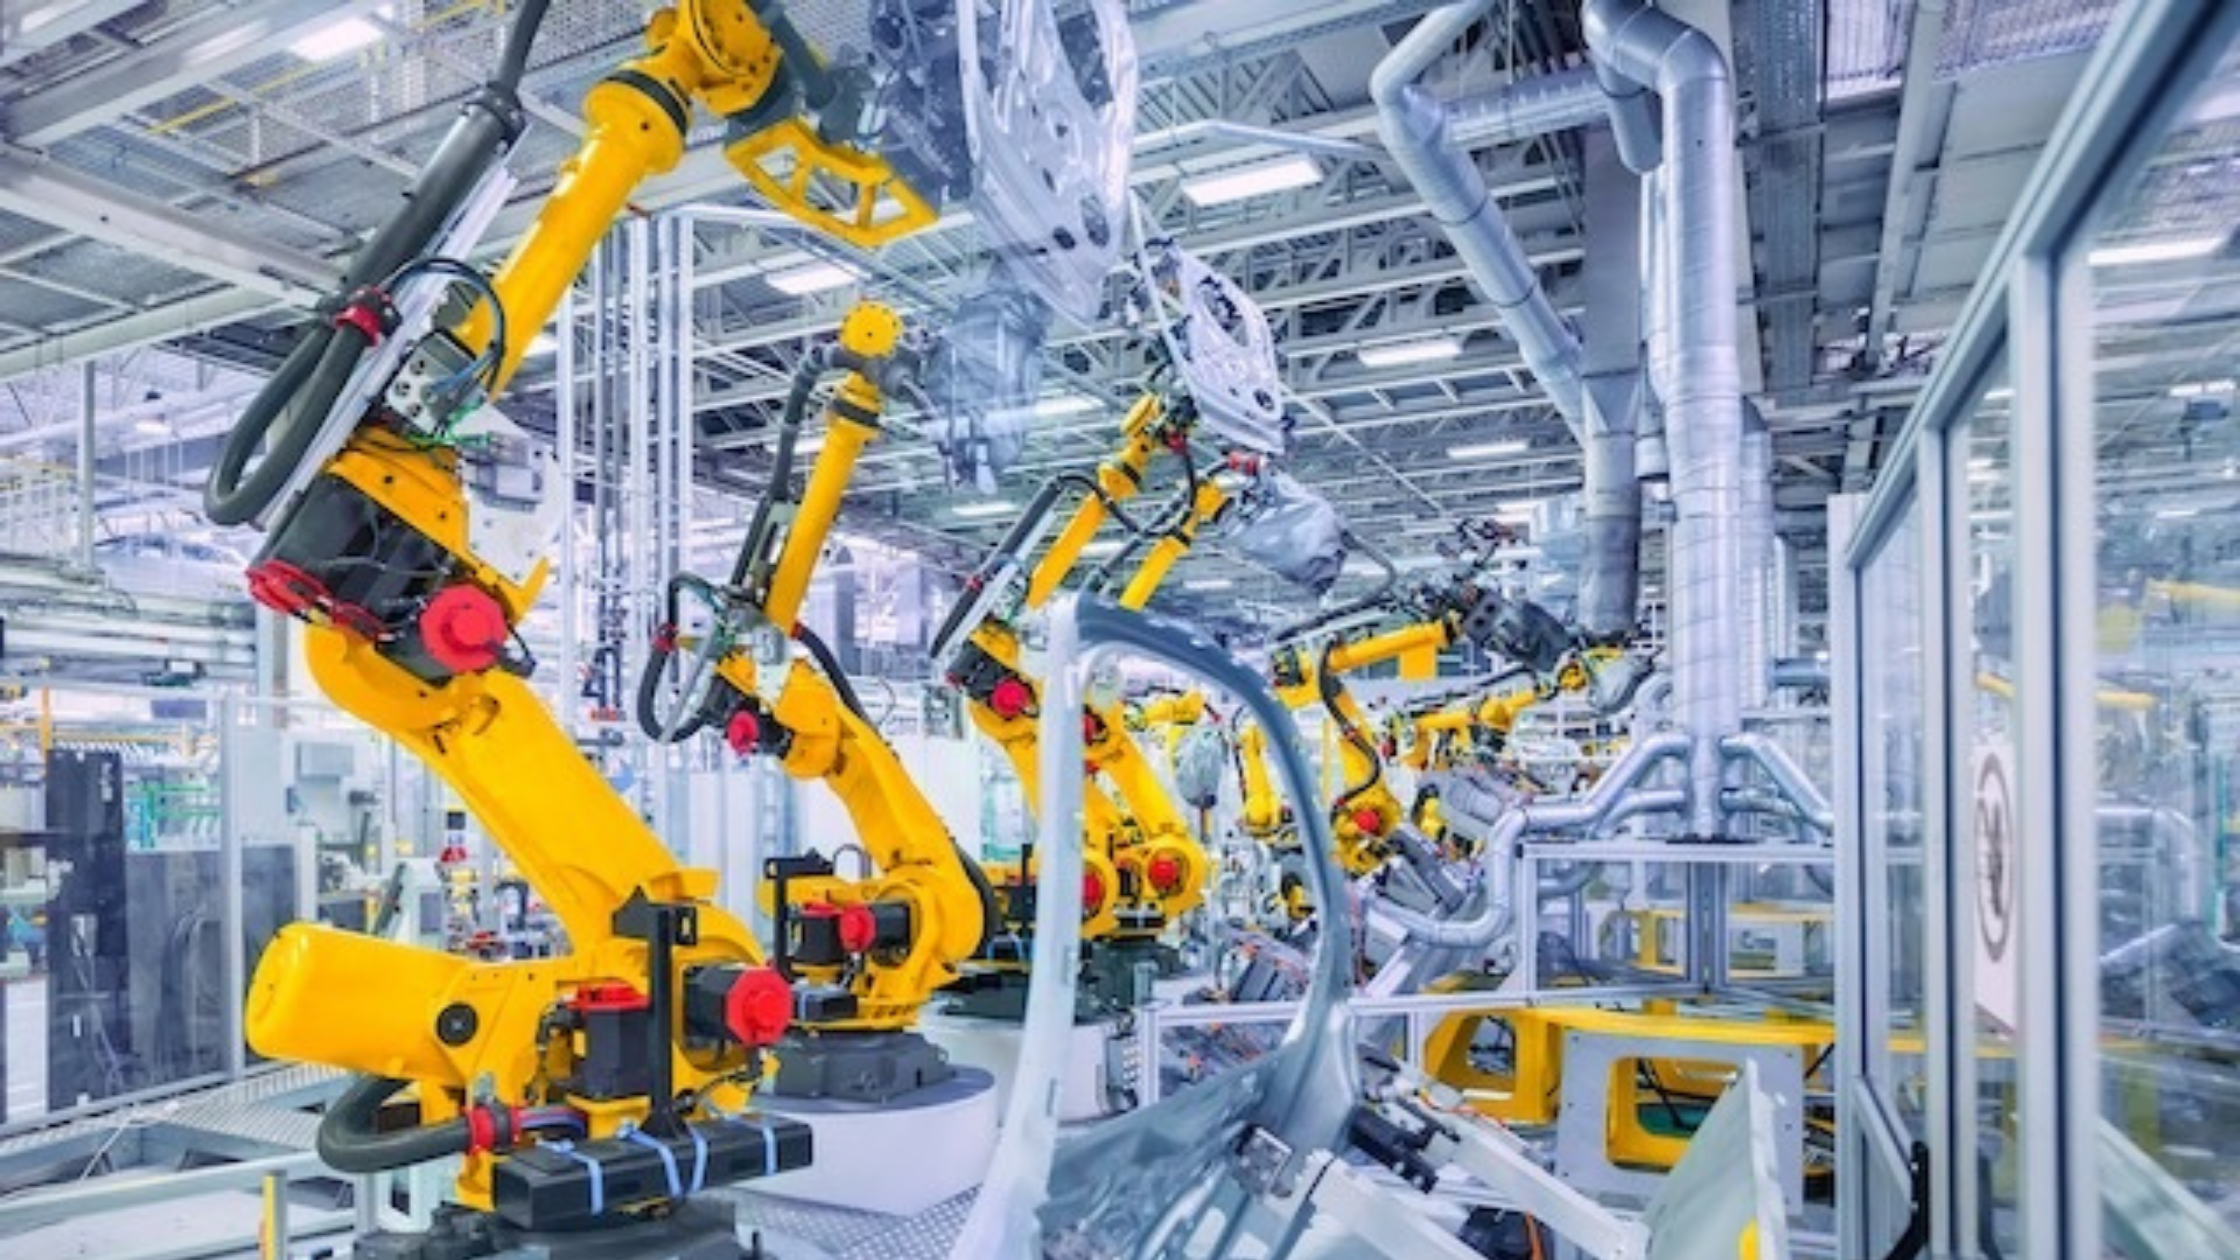 Improving Safety and Communication in the Manufacturing Industry